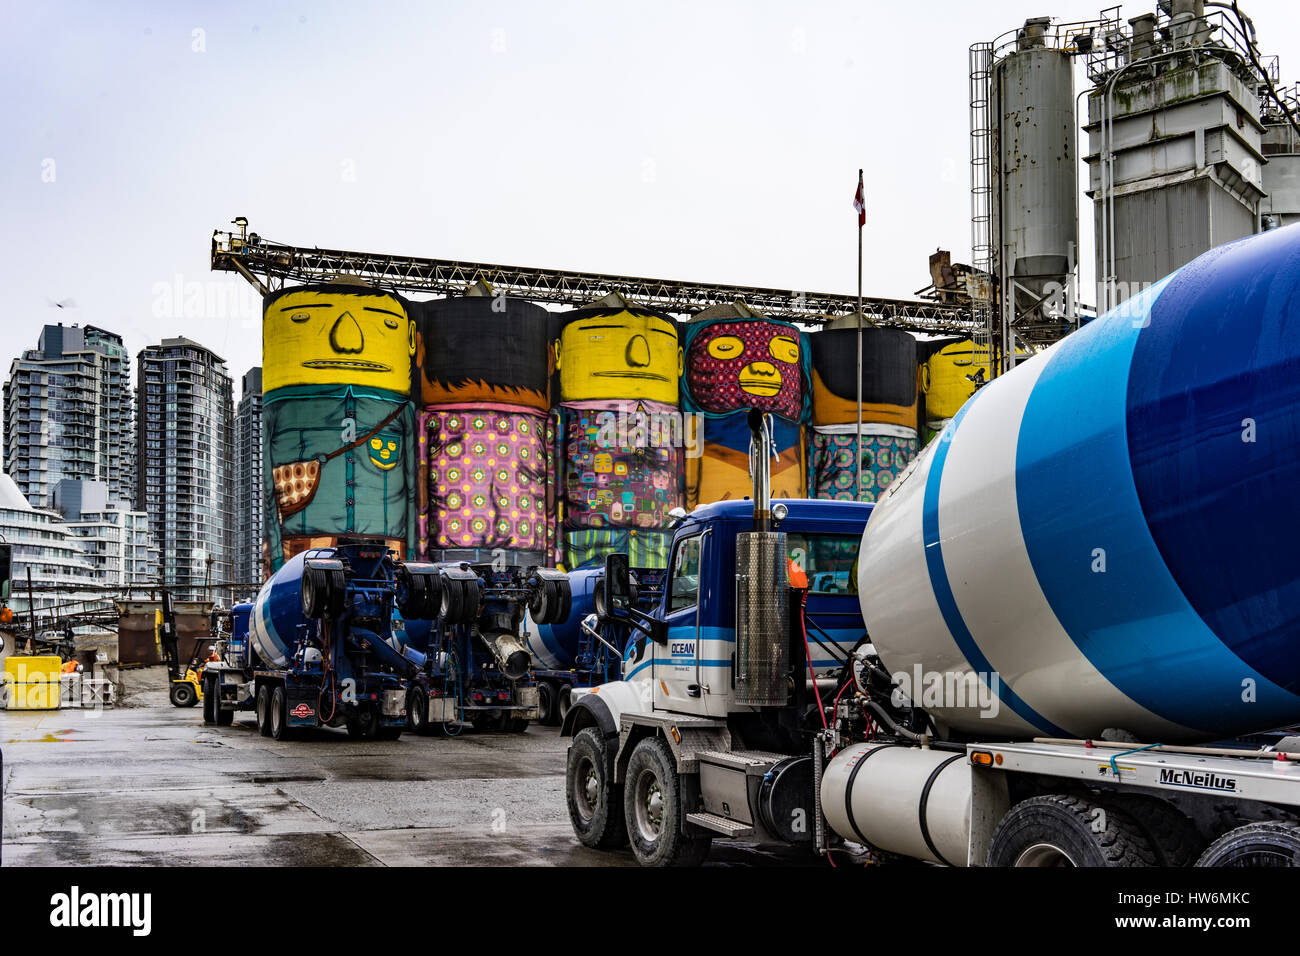 Giants from Grain Silos by OSGEMEOS Brazilian Artists designed for Vancouver's Biennale on Granville Island. - Stock Image